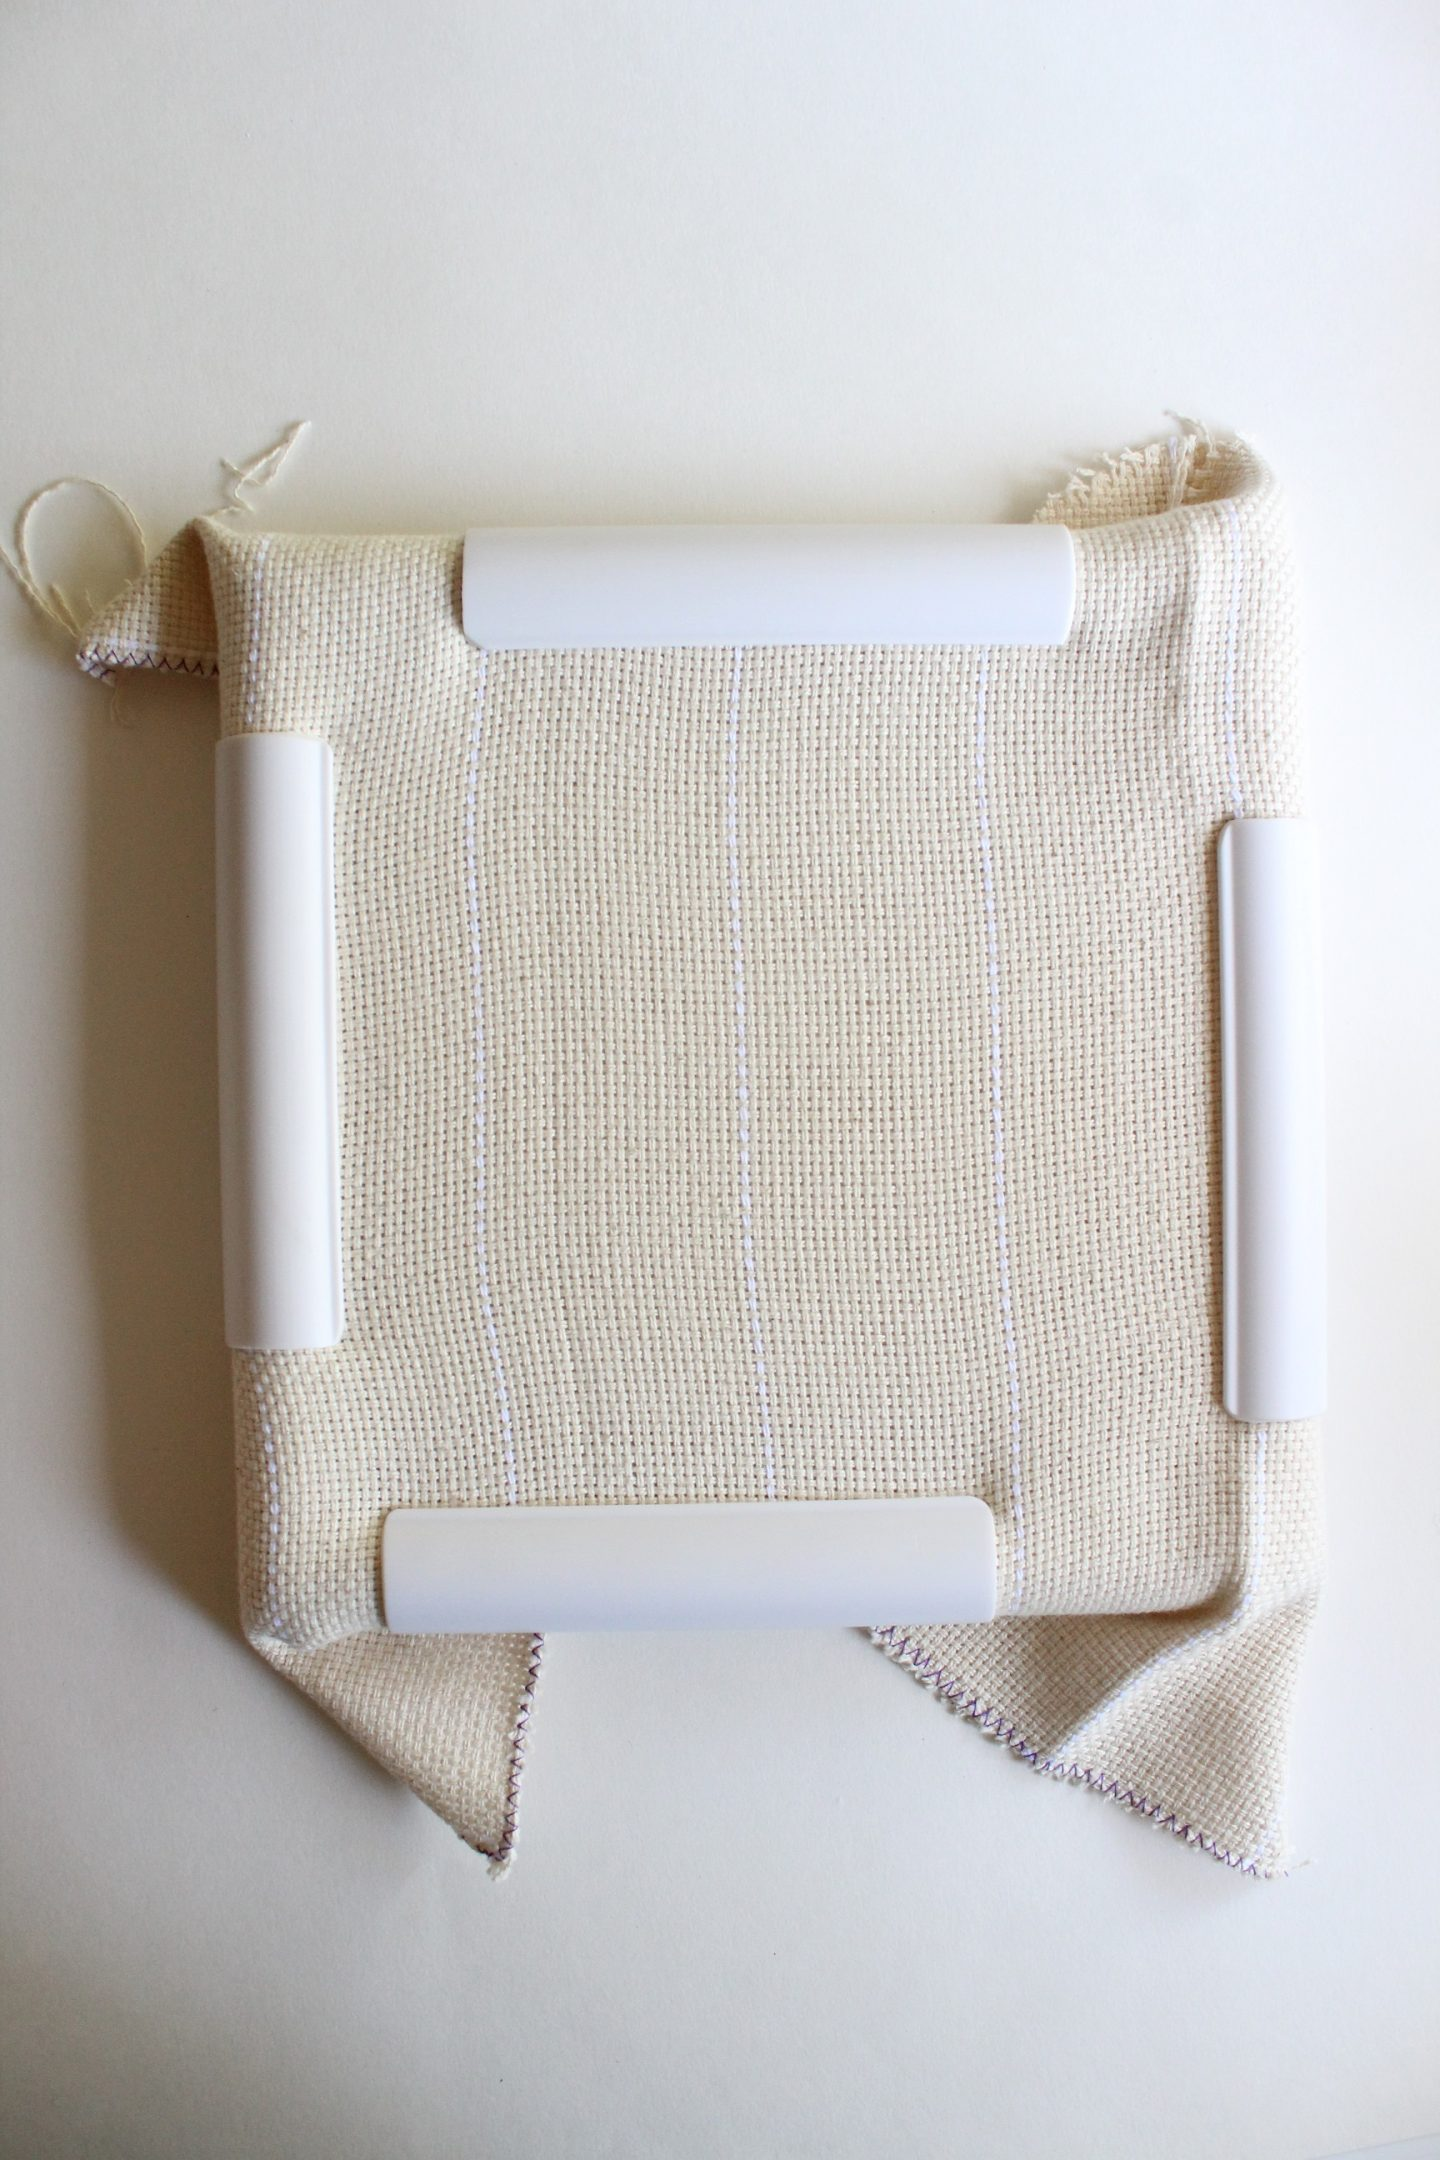 punch needle fabric in a frame